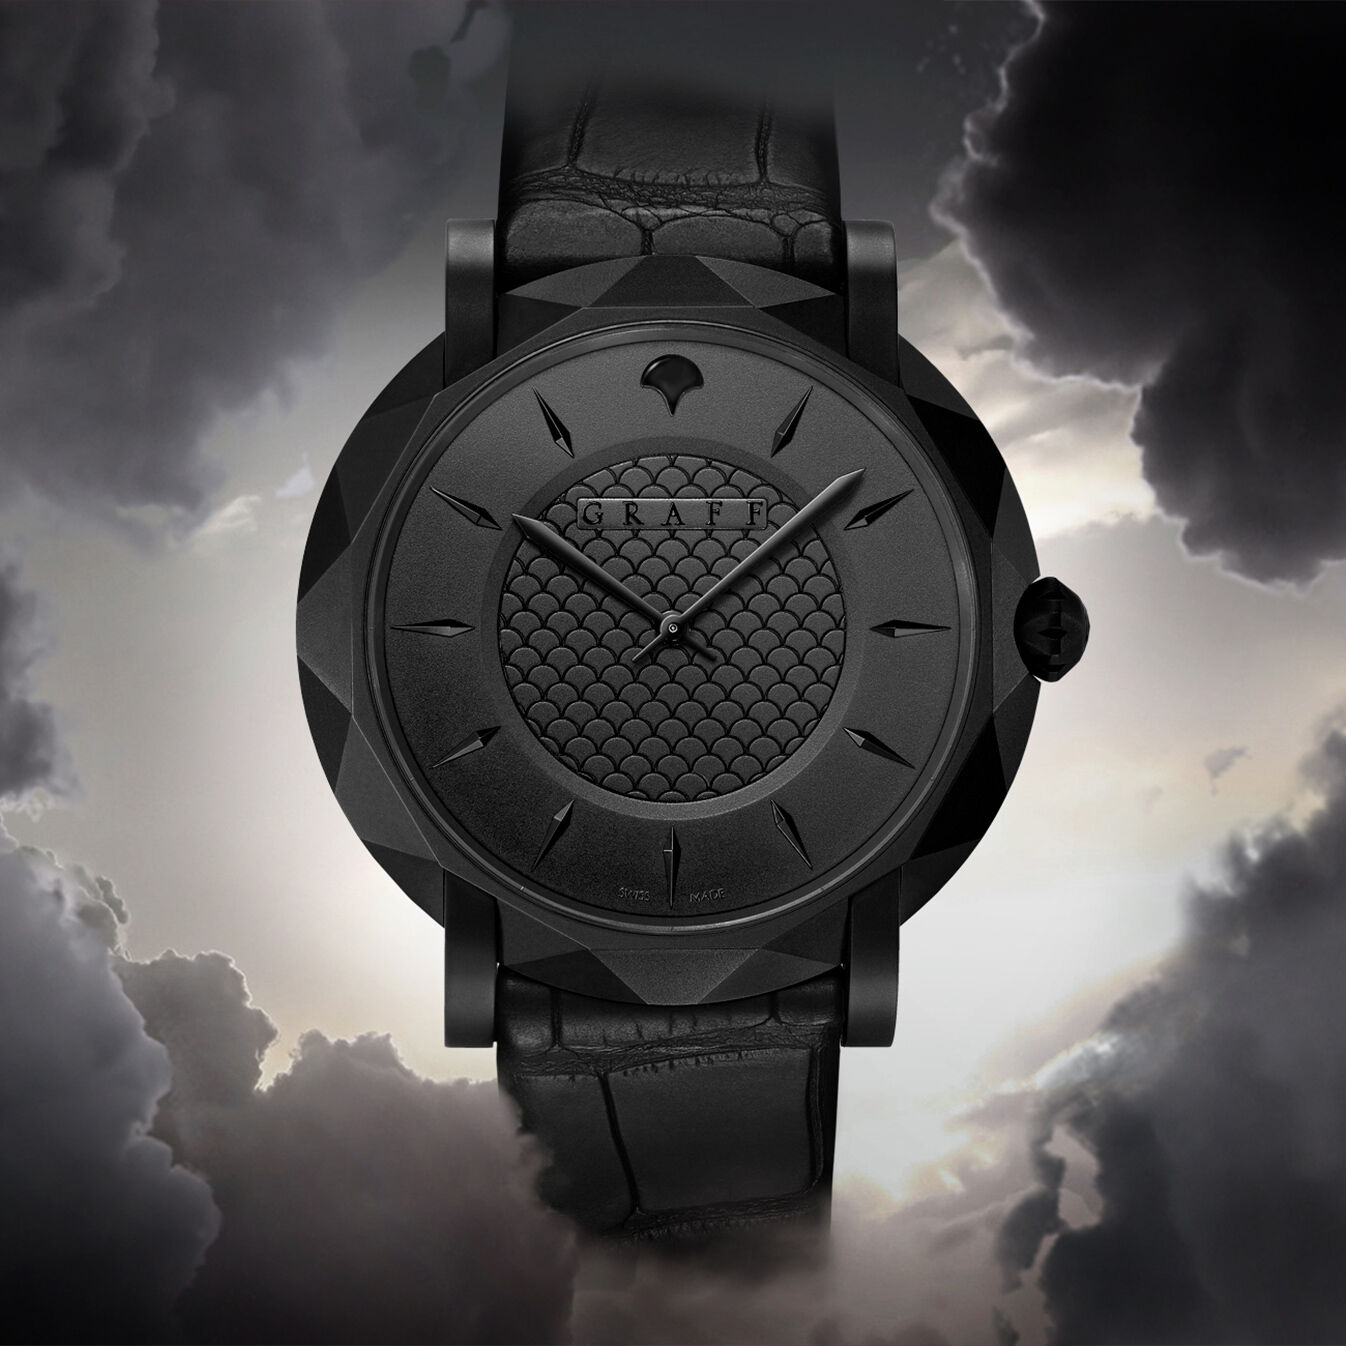 Graff Eclipse watch on a grey cloudy background